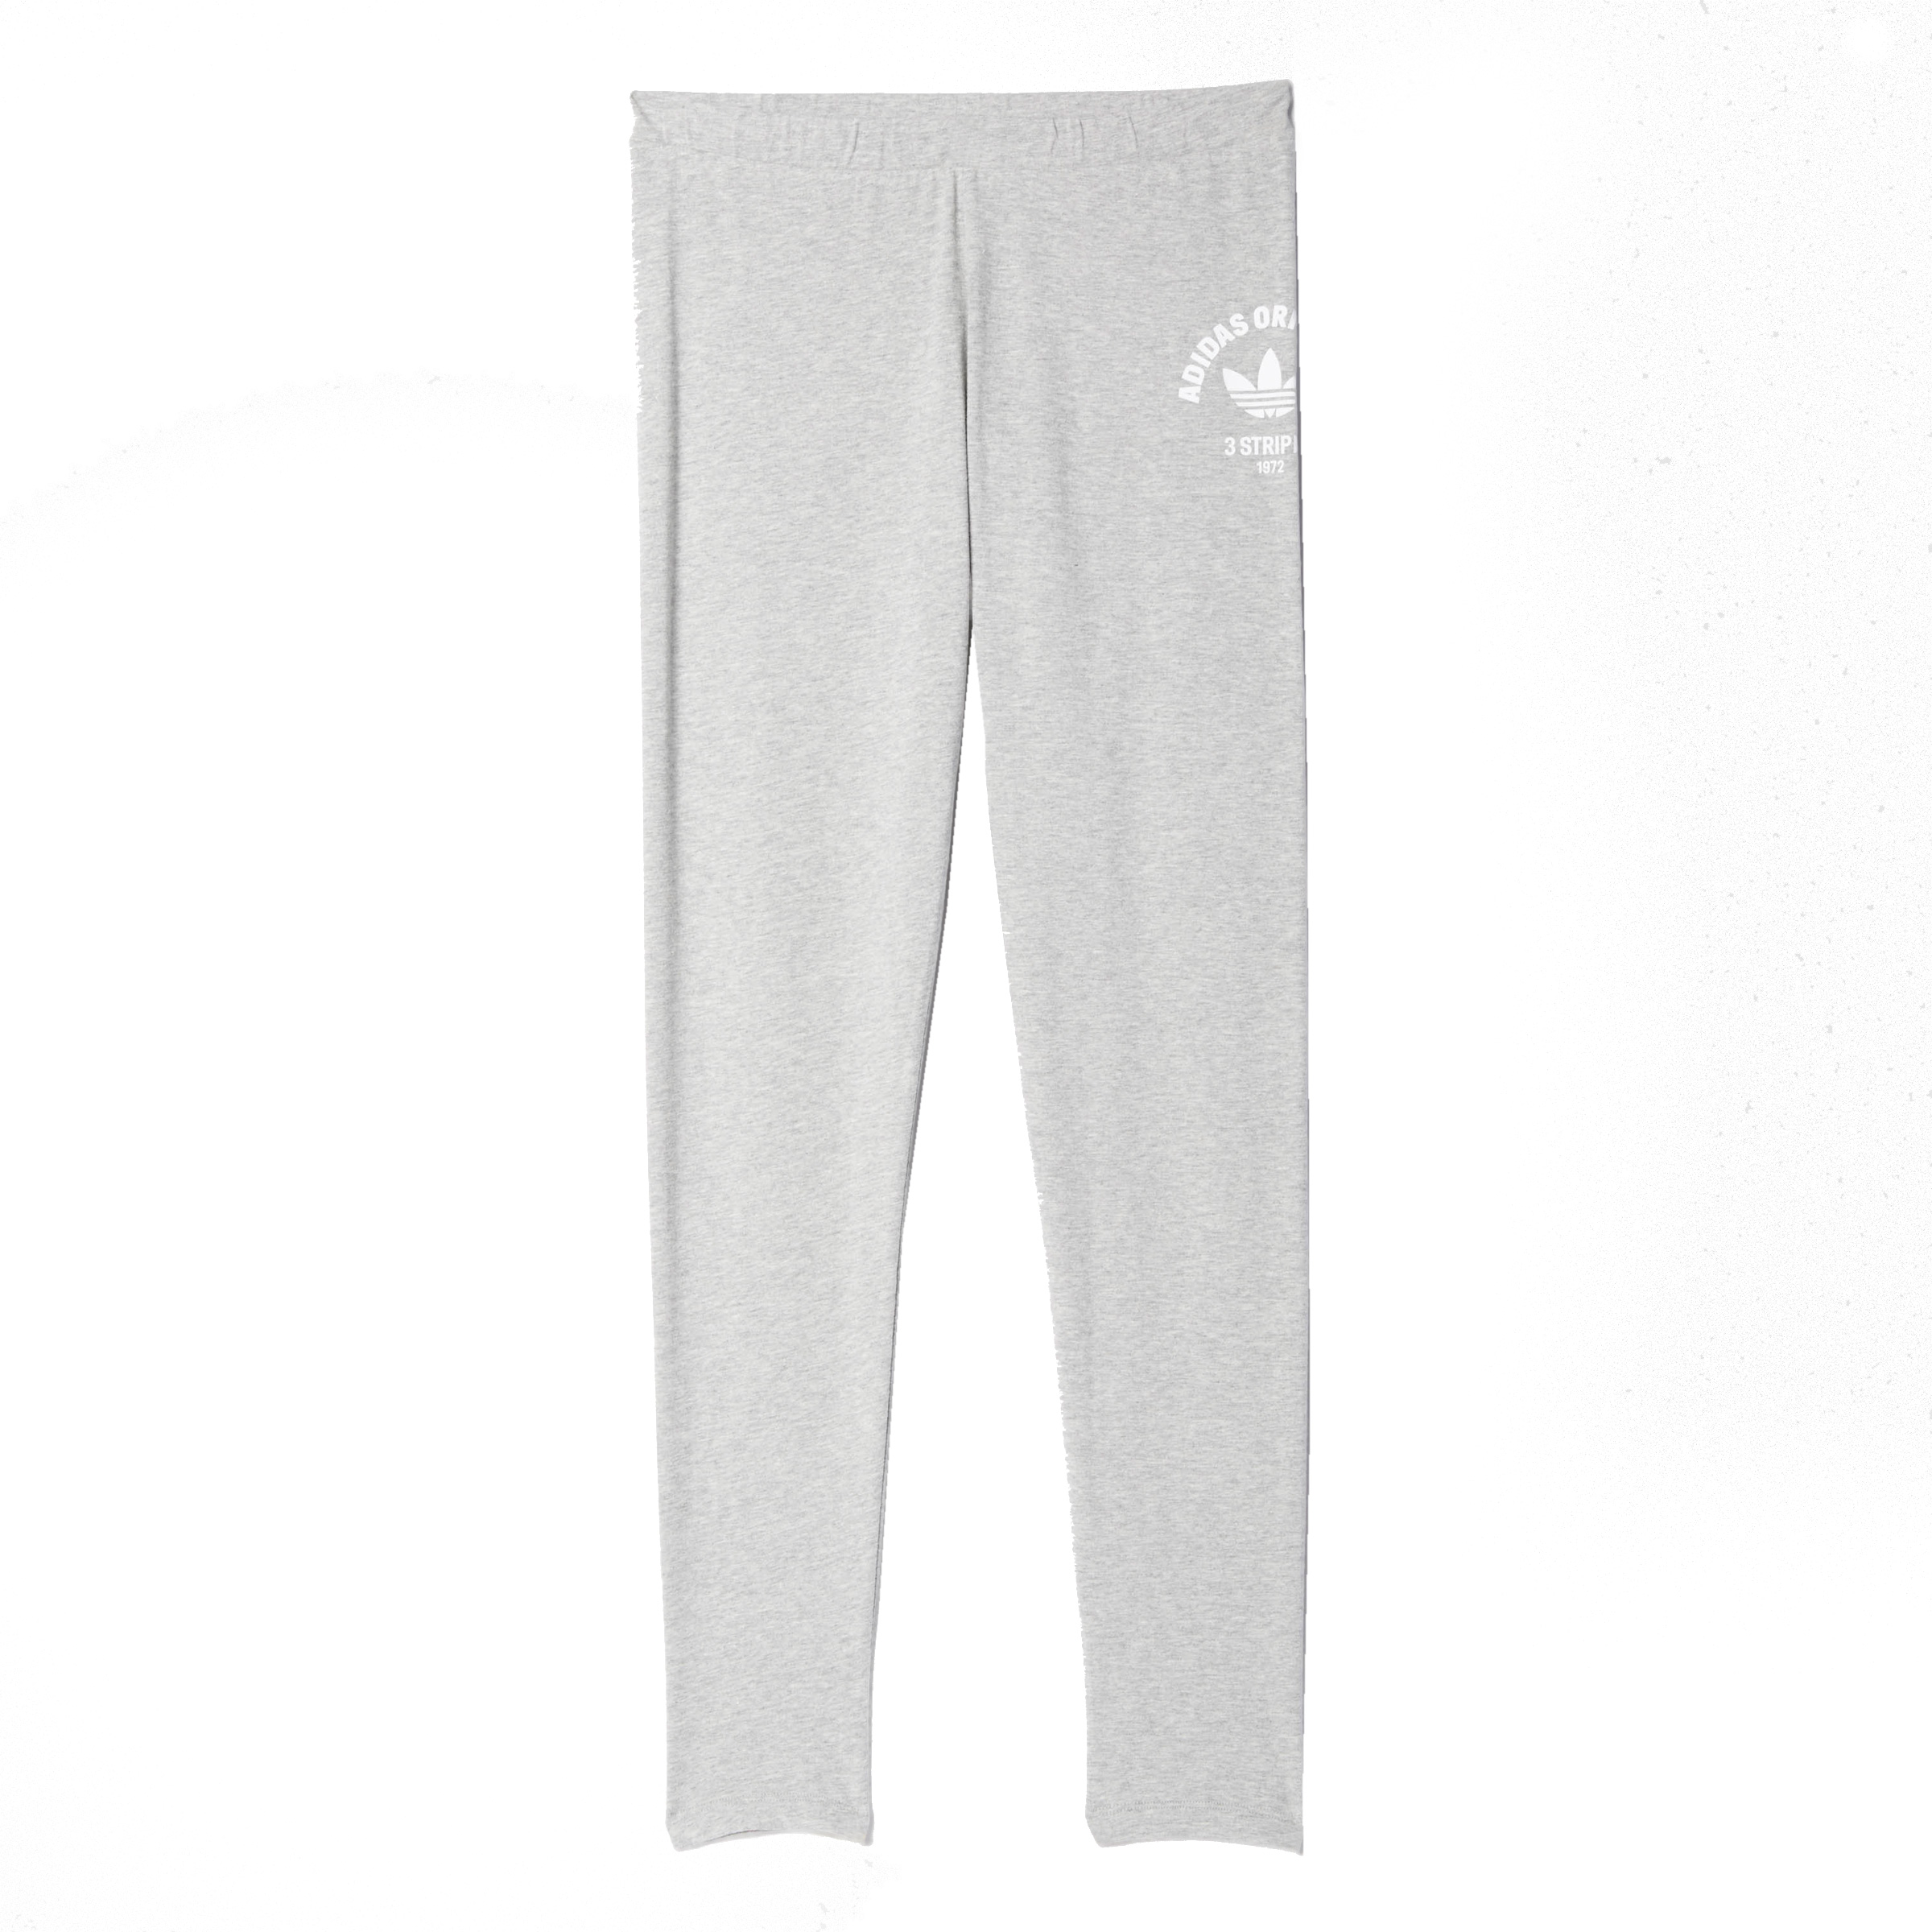 adidas originals tight long trousers pants ladies grey ebay. Black Bedroom Furniture Sets. Home Design Ideas